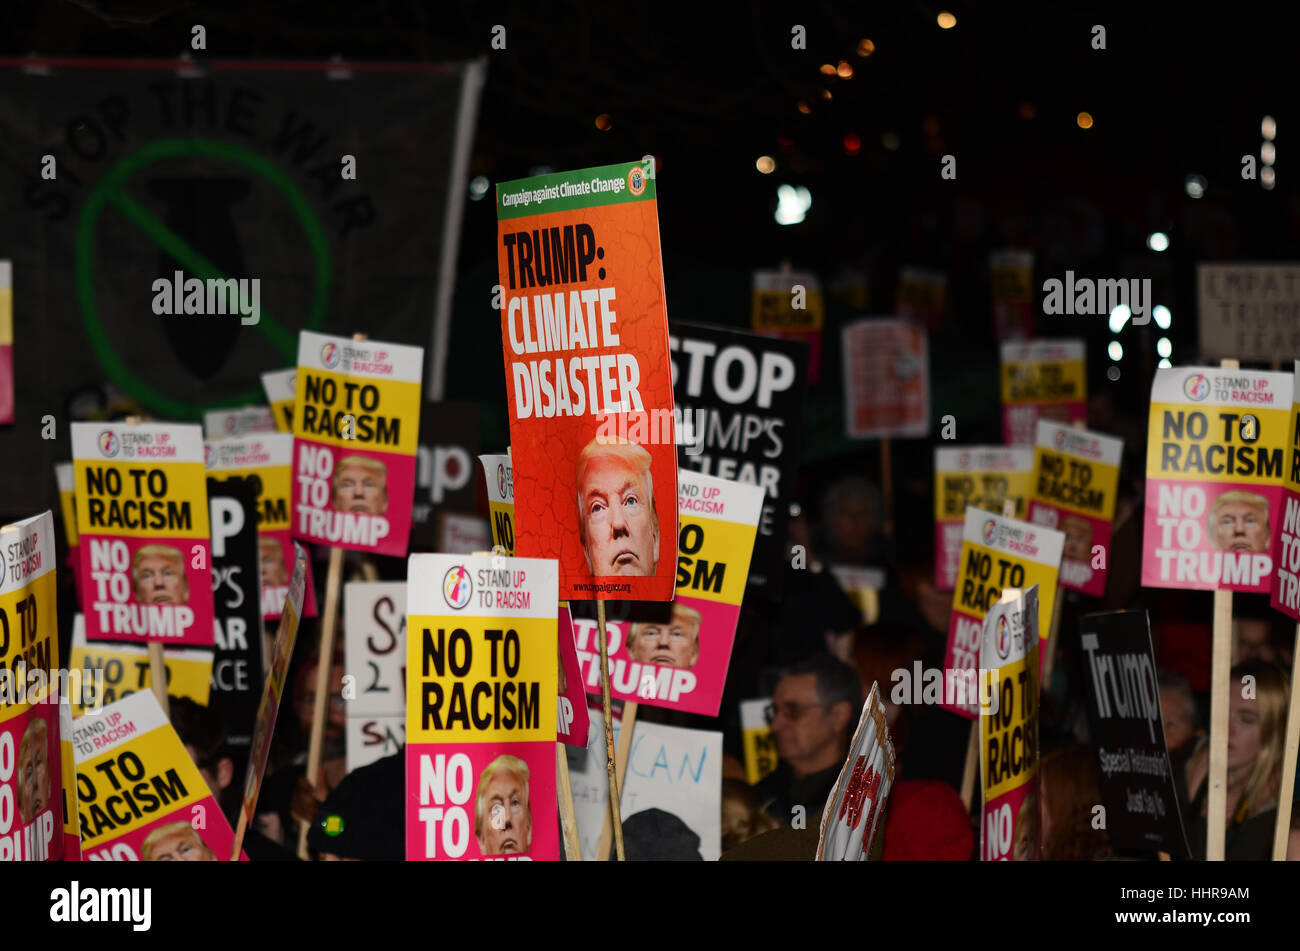 Donald Trump protest outside the US Embassy in London against alleged racist, homophobic and sexist remarks made - Stock Image